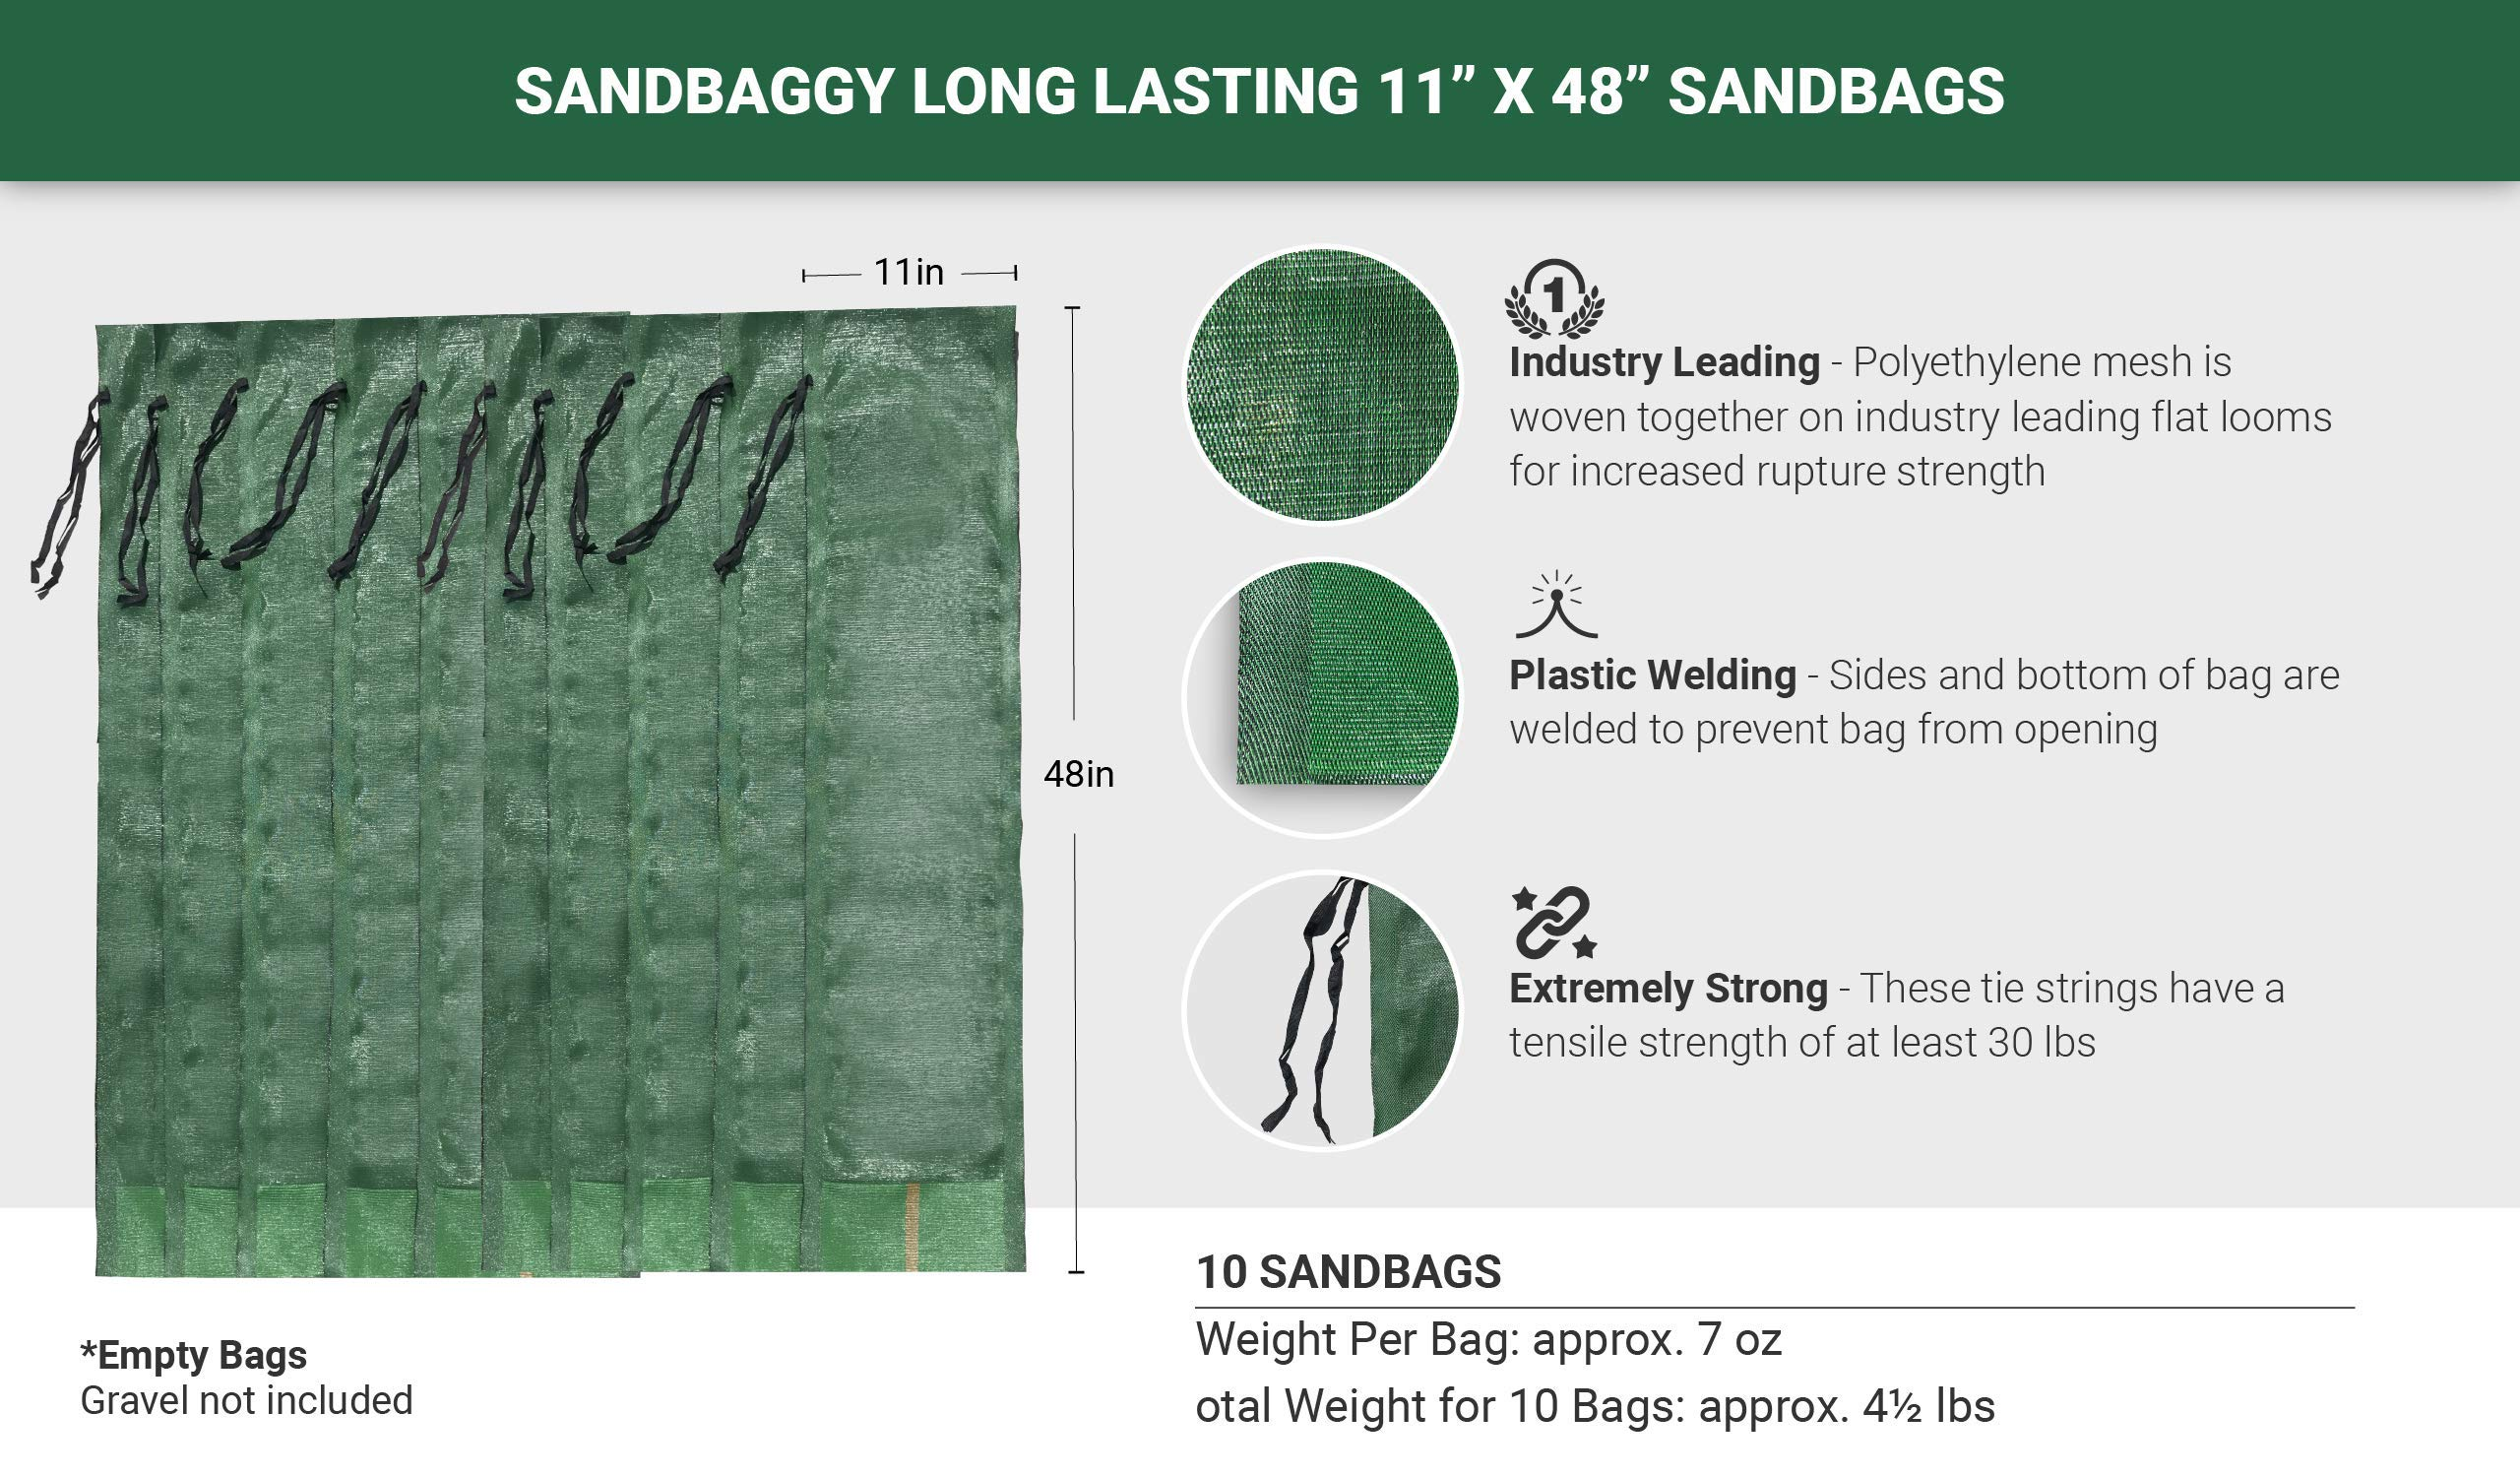 Sandbaggy - 11'' x 48'' Long-Lasting Sandbags - Lasts 1-2 Yrs - Sandbags for Flooding - Monofilament - Sand Bag - Flood Water Barrier - Water Curb - Tent Sandbags - Store Bags (Pack of 10) by Sandbaggy